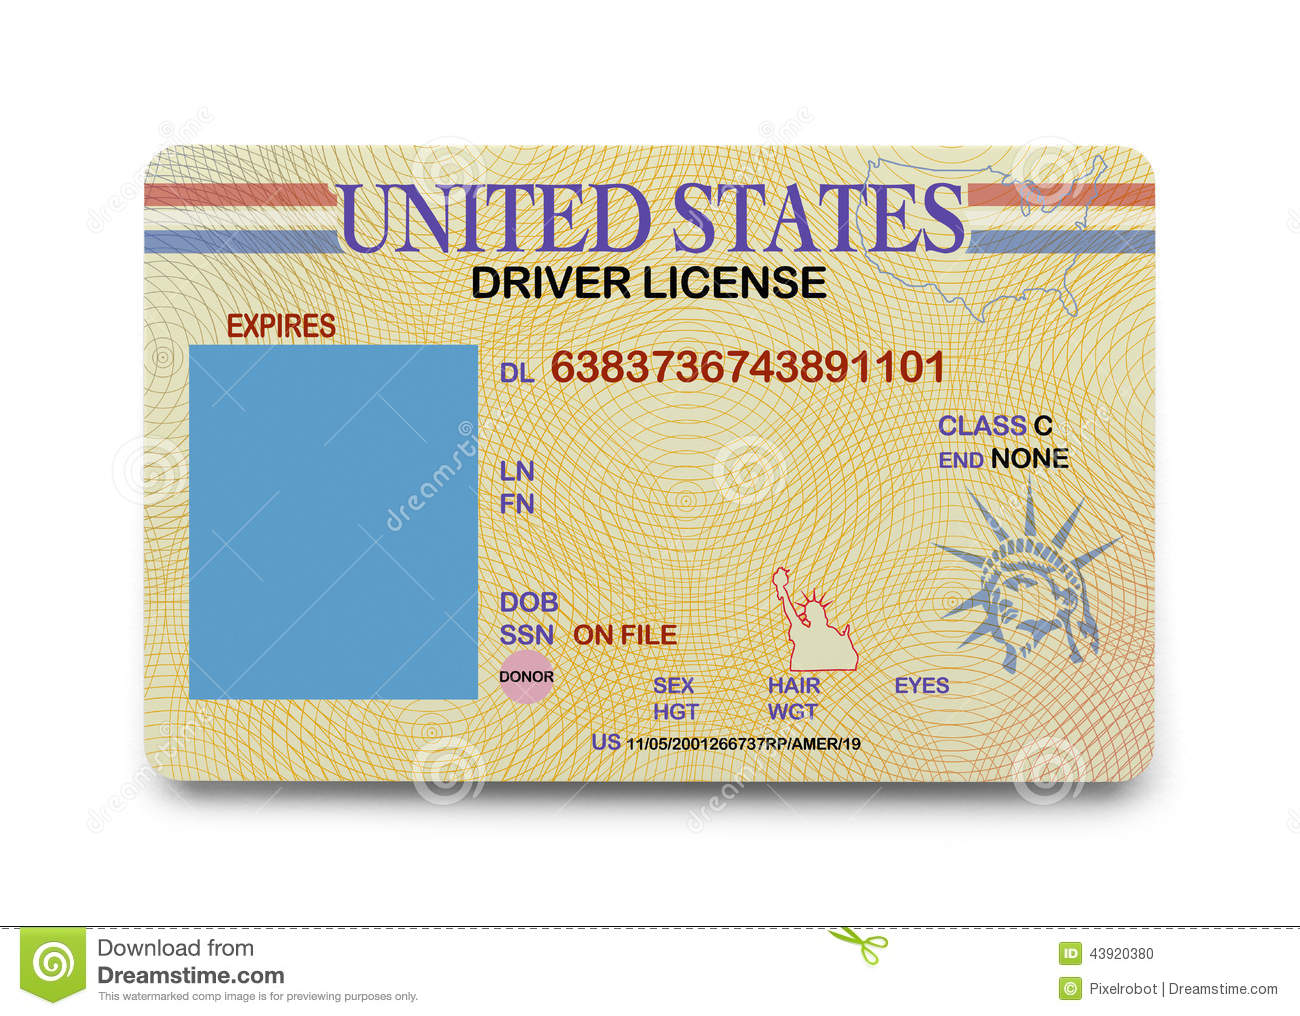 New Florida Drivers License >> 8 Blank Drivers License Template PSD Images - North Carolina Drivers License Template, Virginia ...